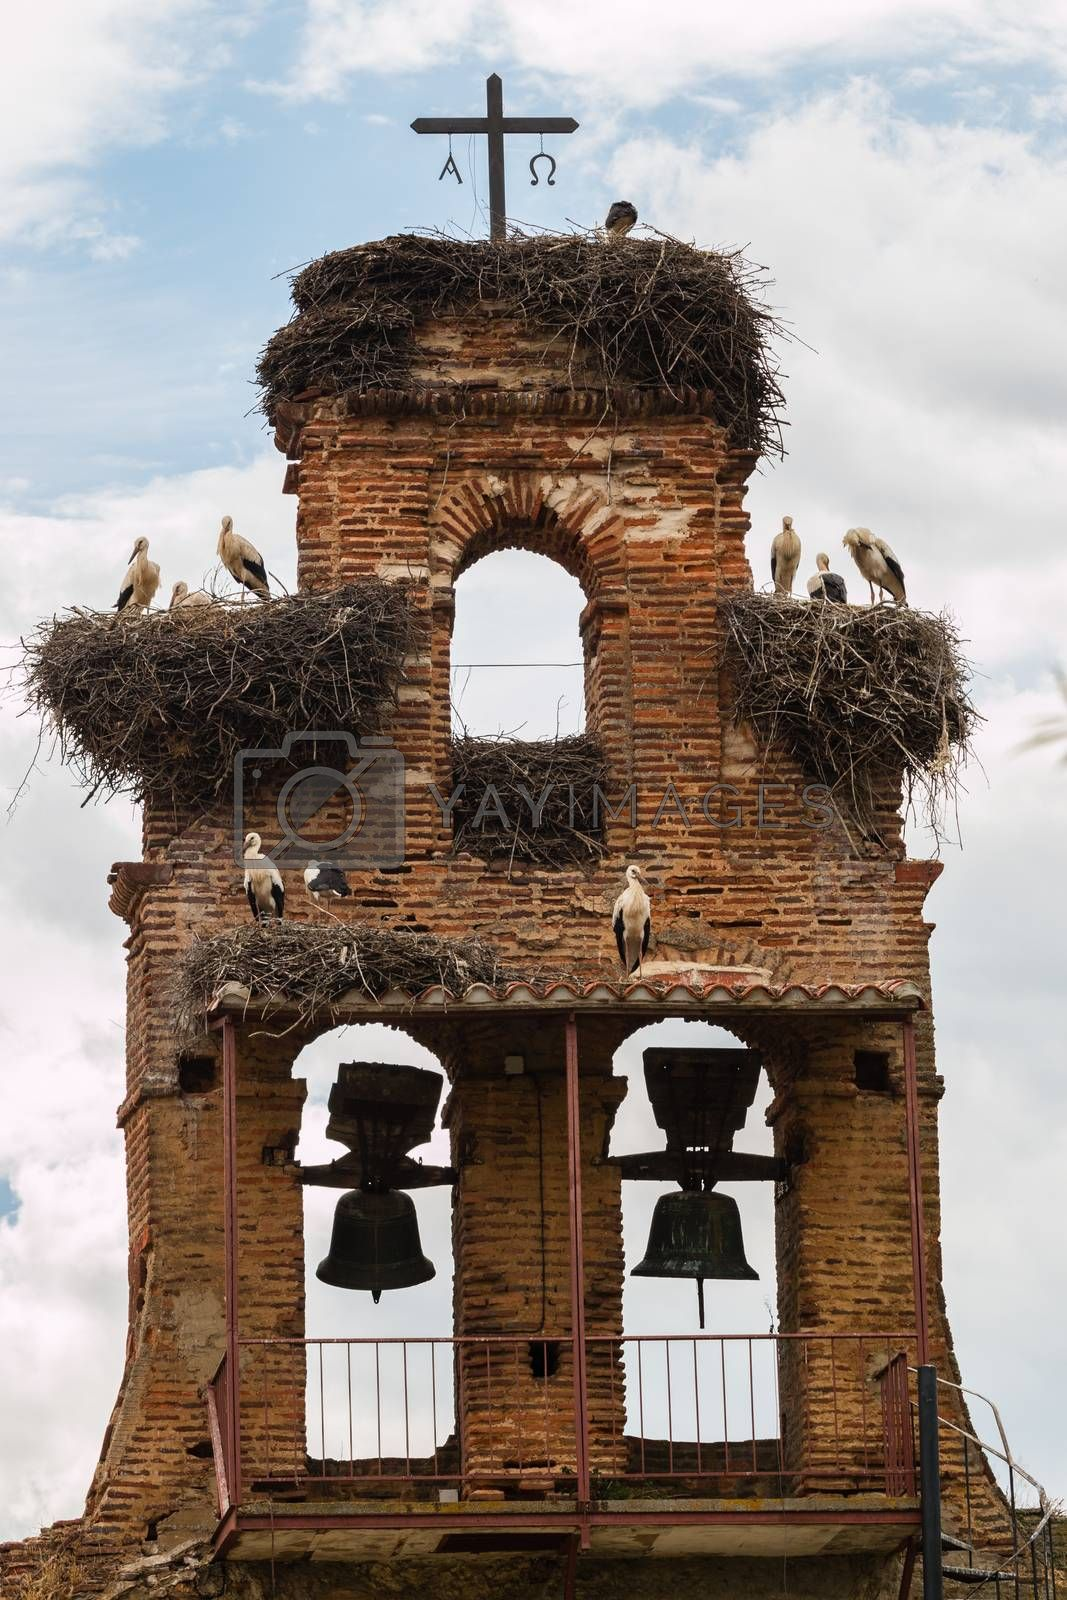 Curious image of  a old belfry crowded with stork nestes in a small village in the provonce of leon , Spain